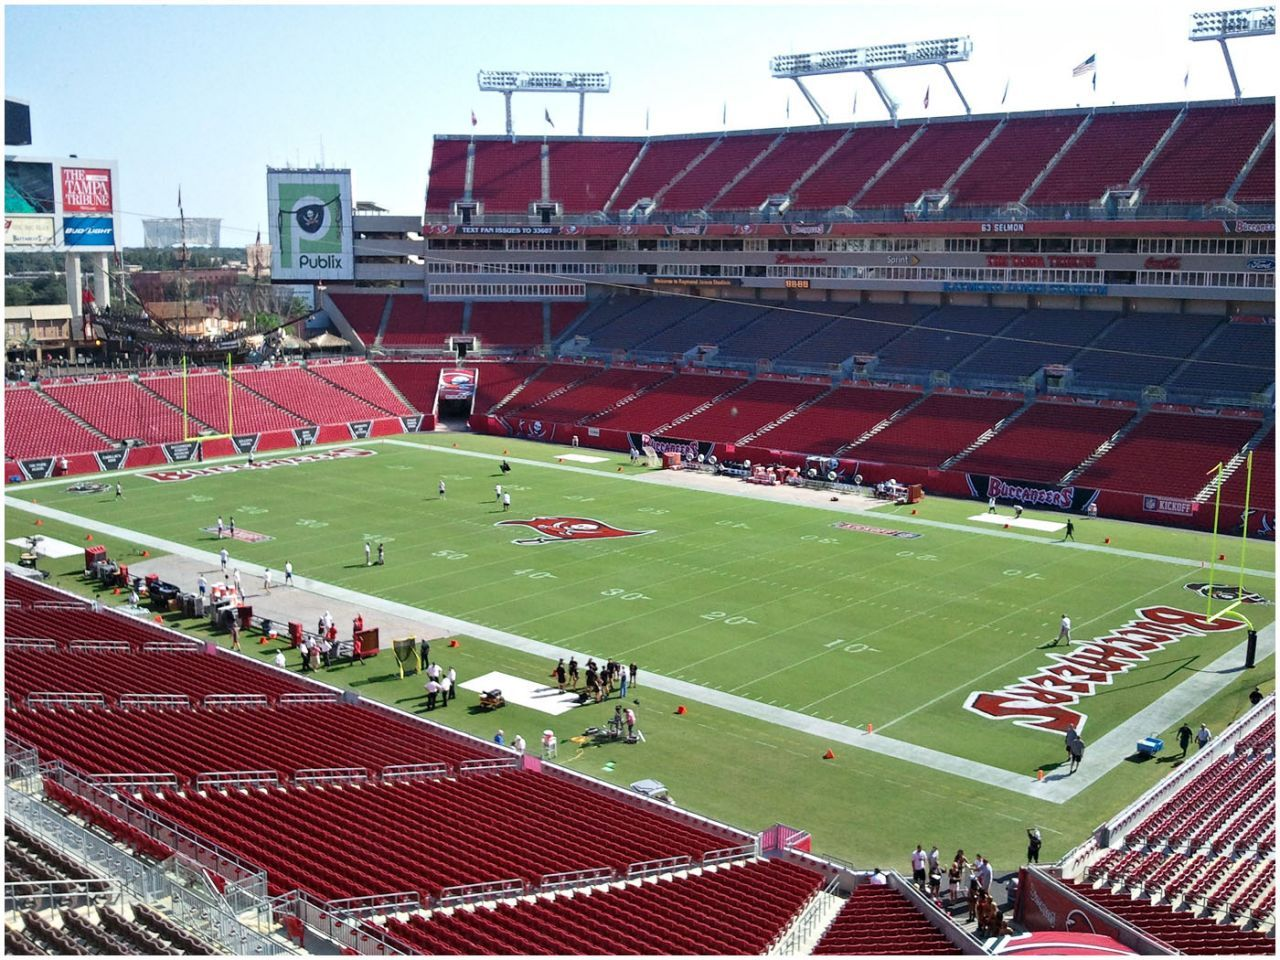 The Best Stadium In The Nfl Raymond James Tampa Fl Nothing Beats The Pirate Ship Great Times Great Times Tampa Tampa Bay Tampa Florida